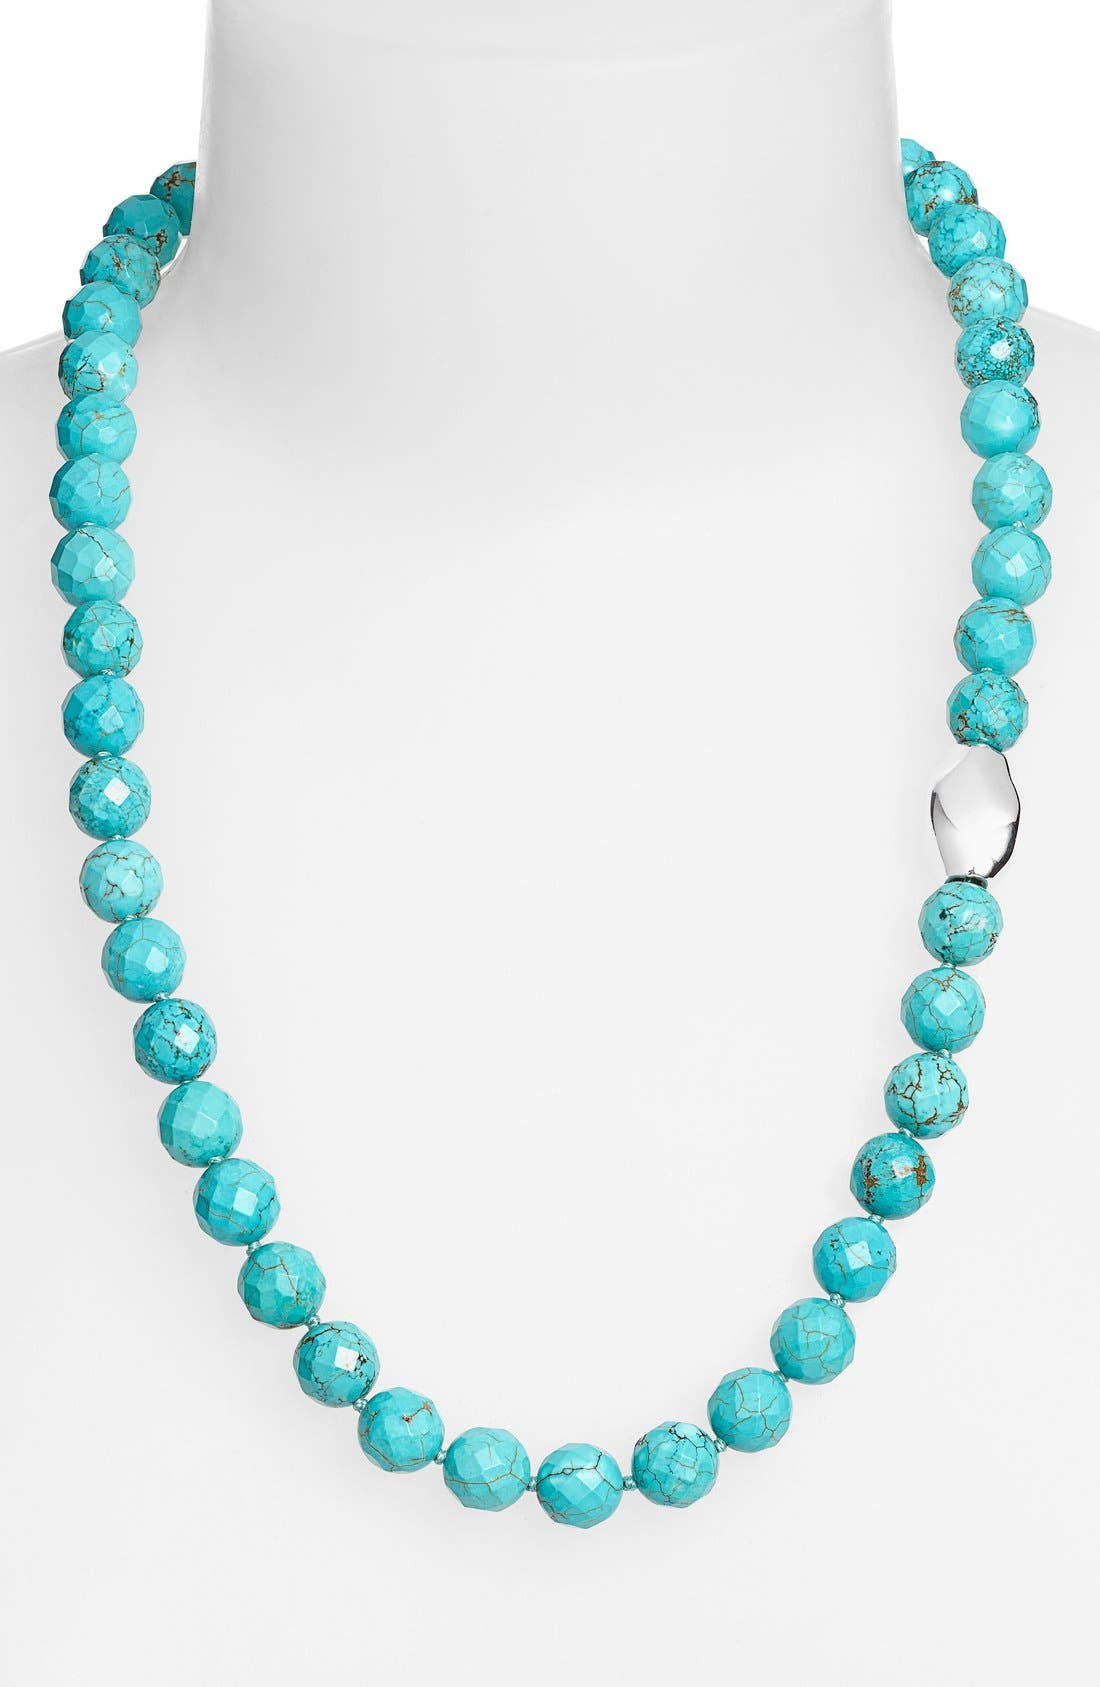 Simon Sebbag Stone Beaded Necklace